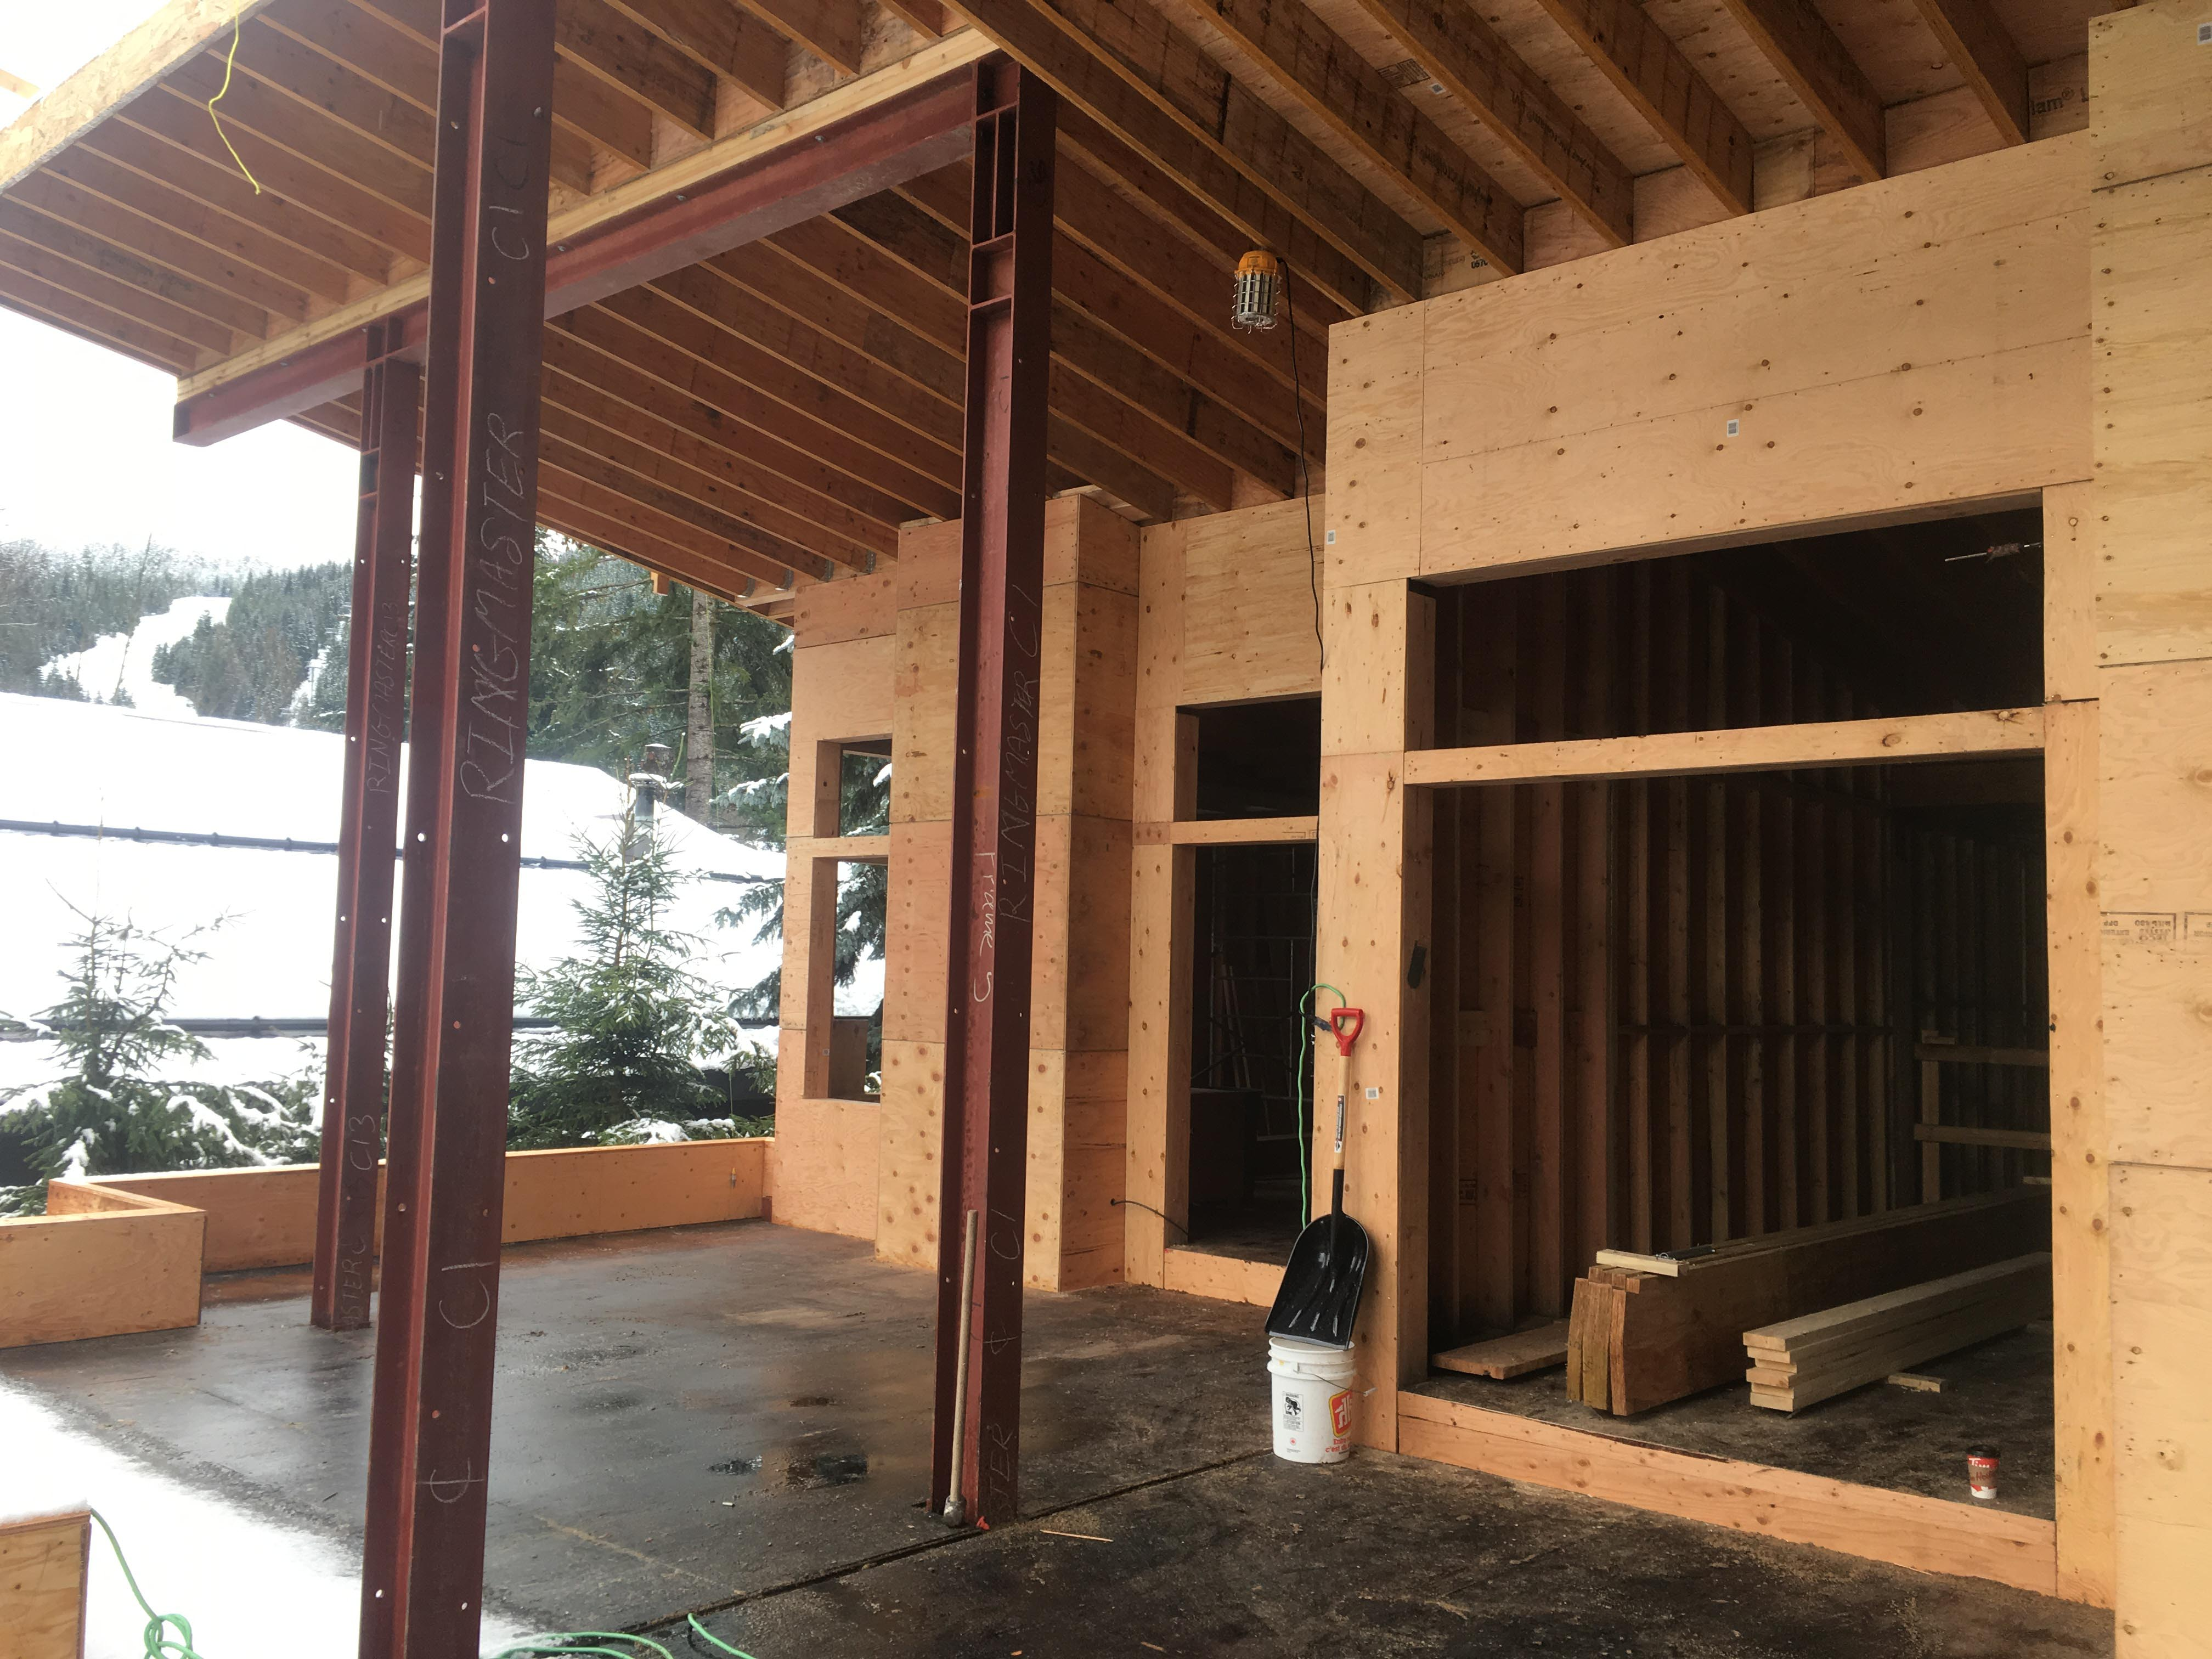 Pound 4 Pound, Framing and Forming, window framing with steel